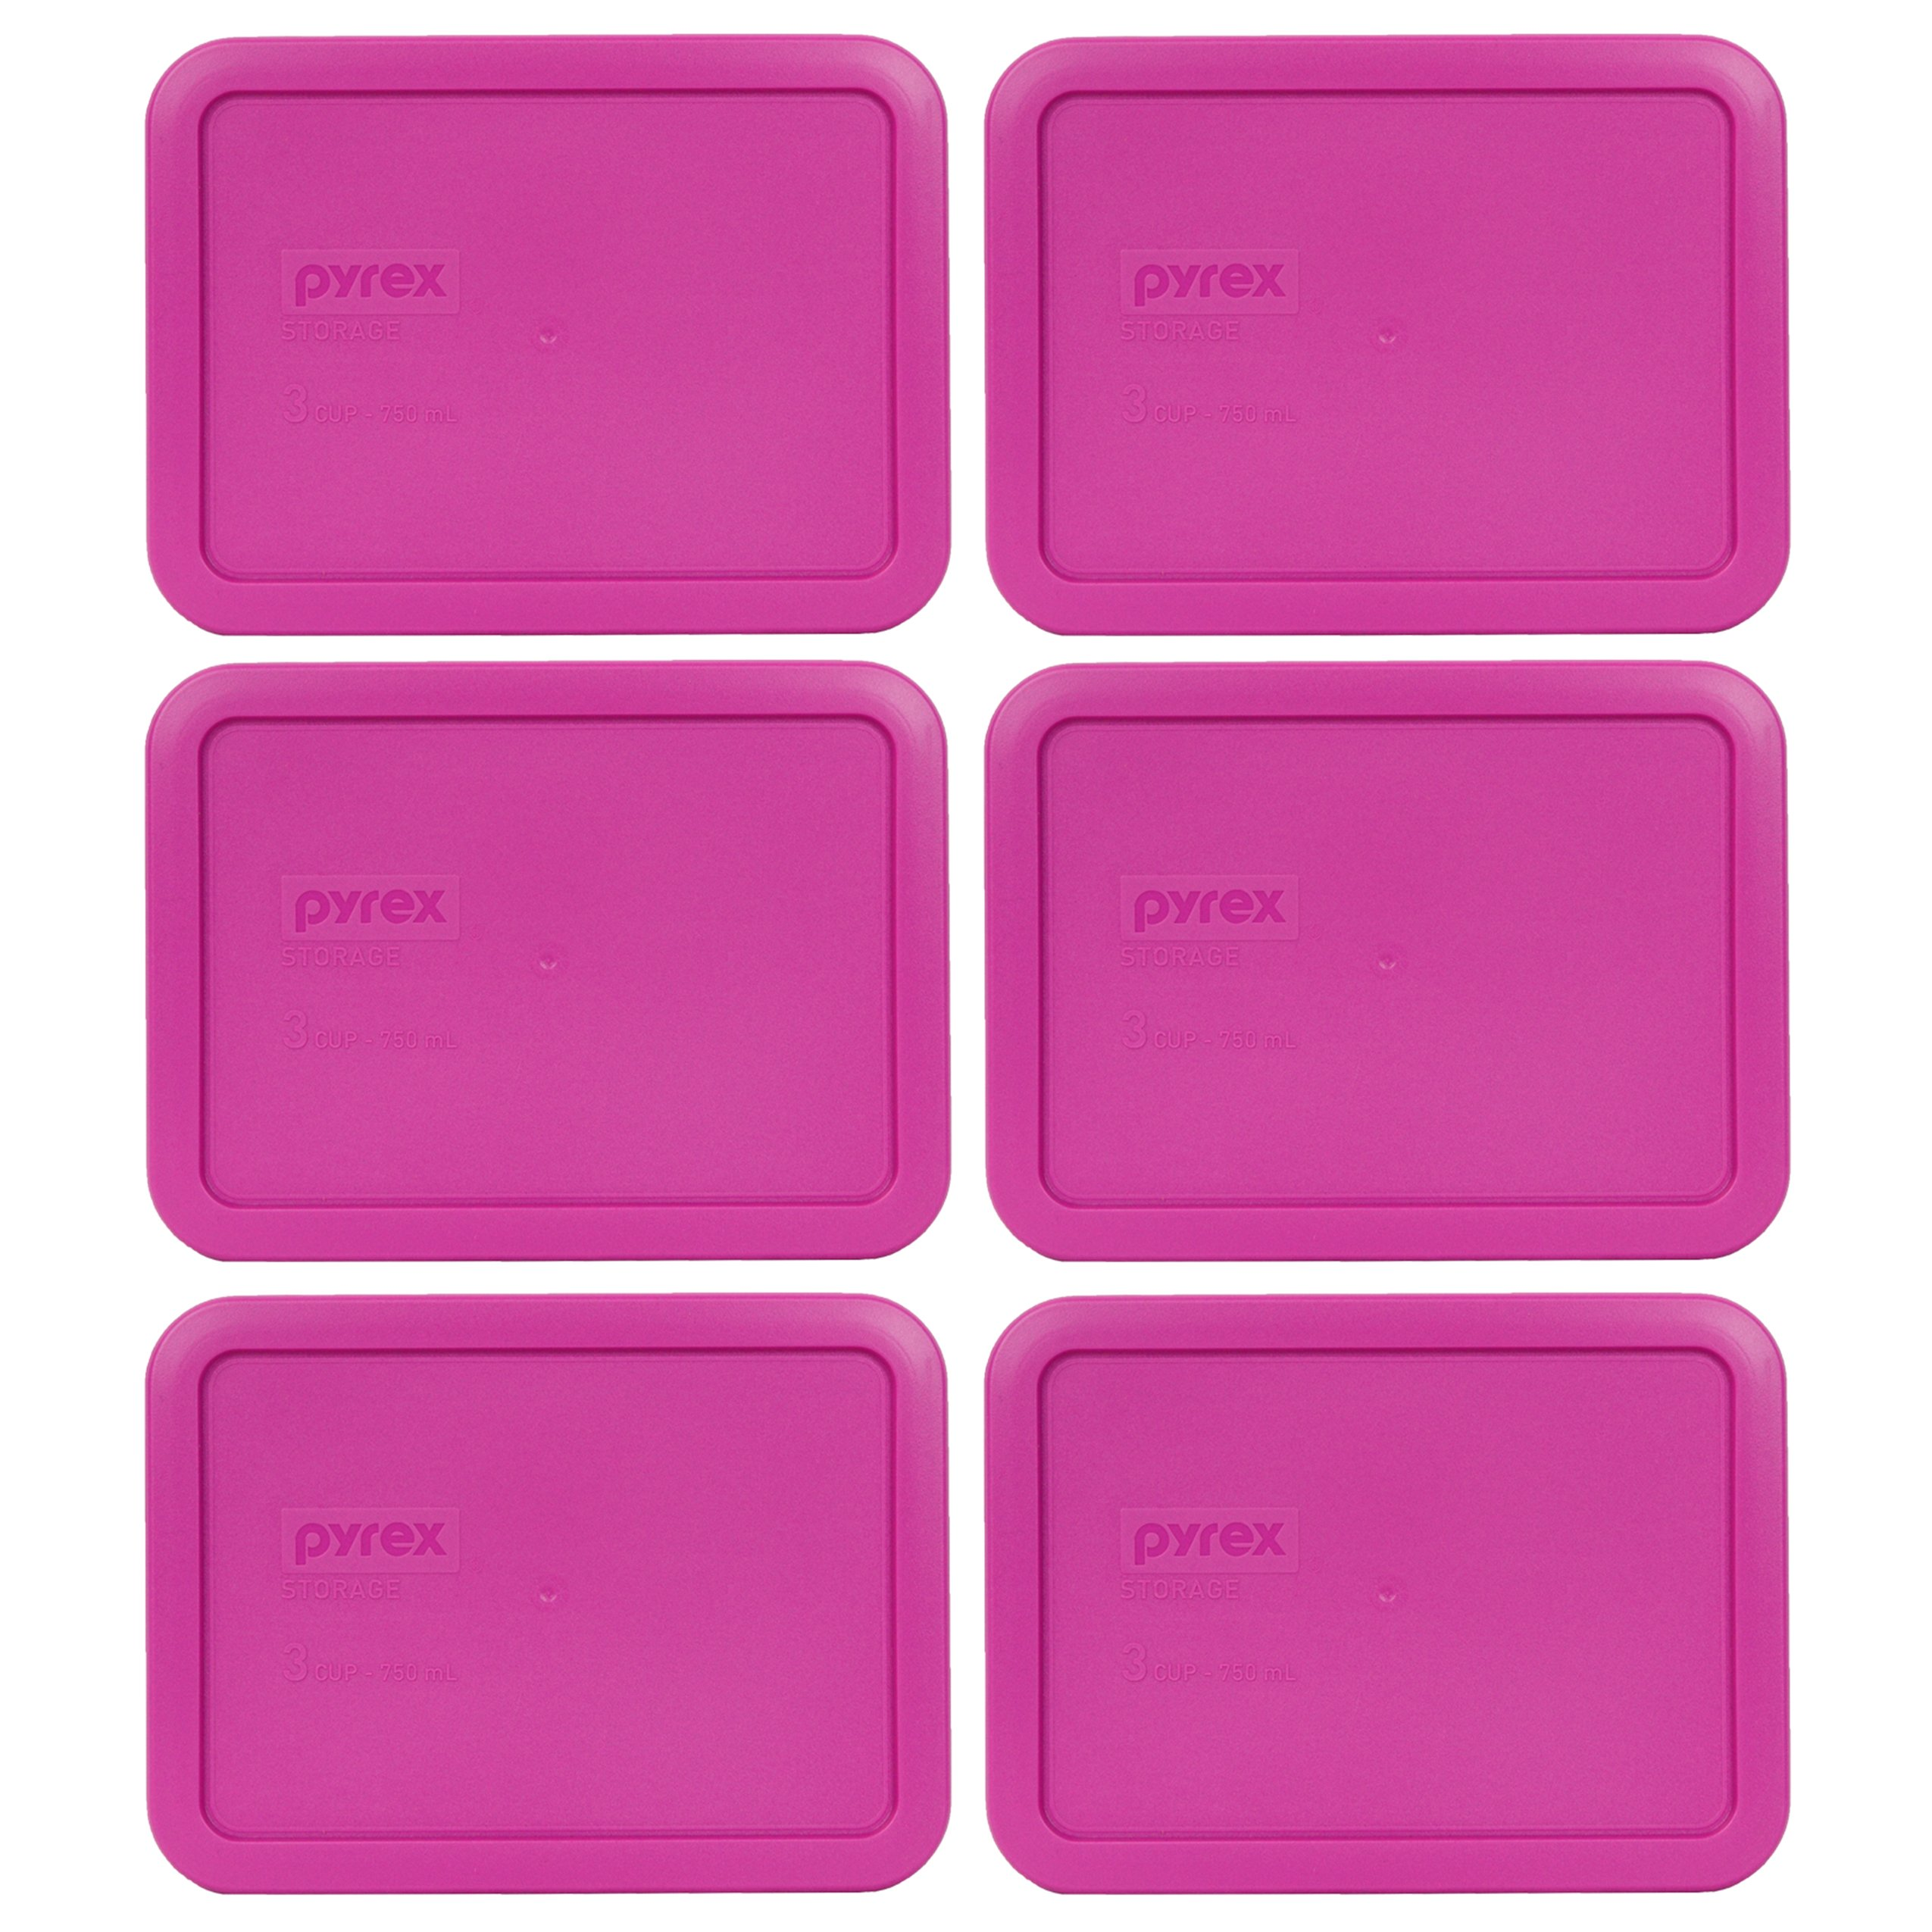 Pyrex 7210-PC 3 Cup Berry Pink Rectangle Plastic Food Storage Lid - 6 Pack